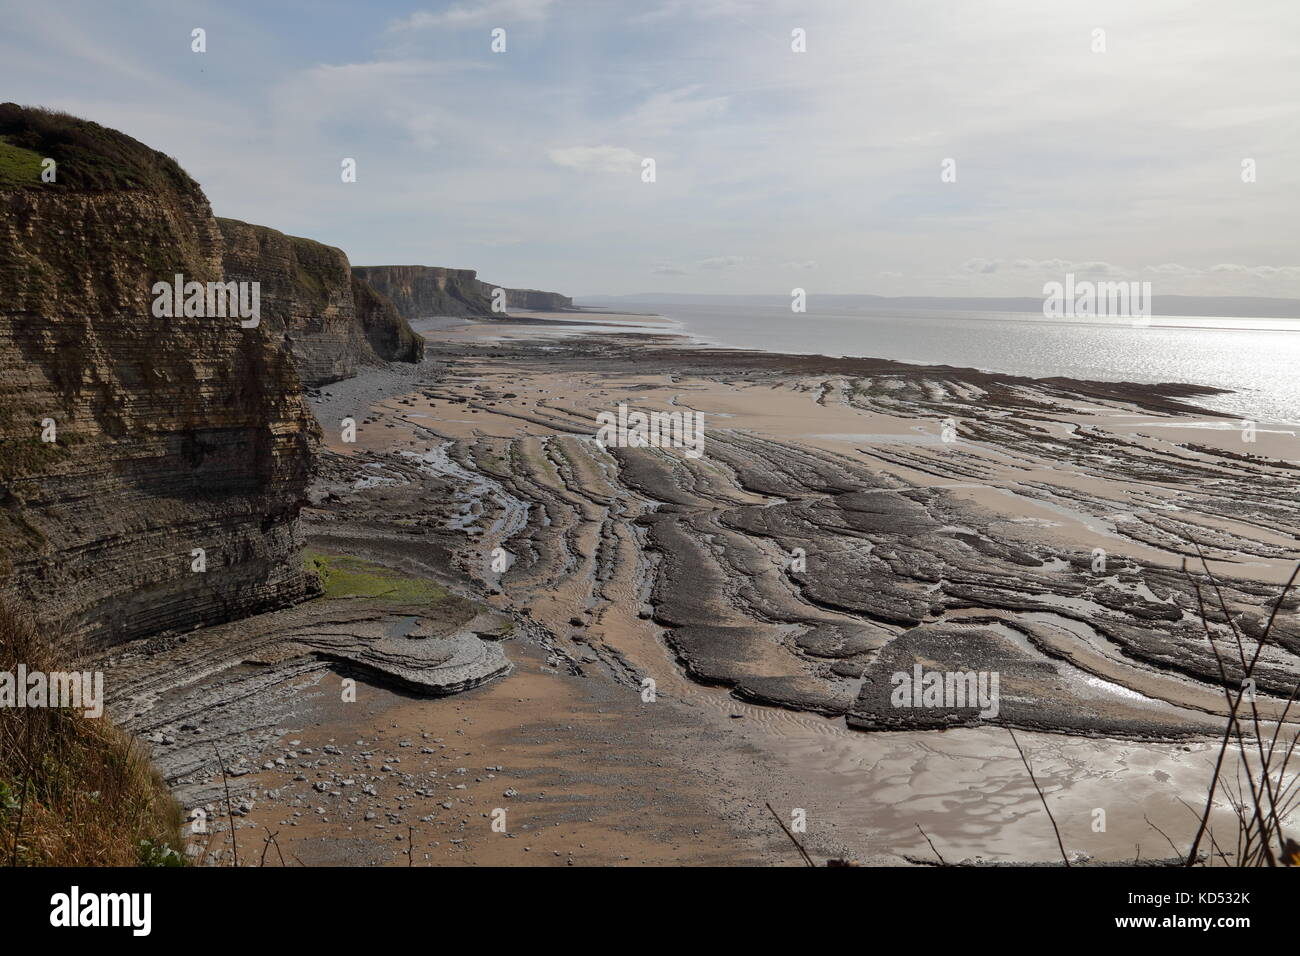 The remote unspoilt coastline between Dunraven bay and Nash point being fairly inaccesible leaves the bays and beaches - Stock Image